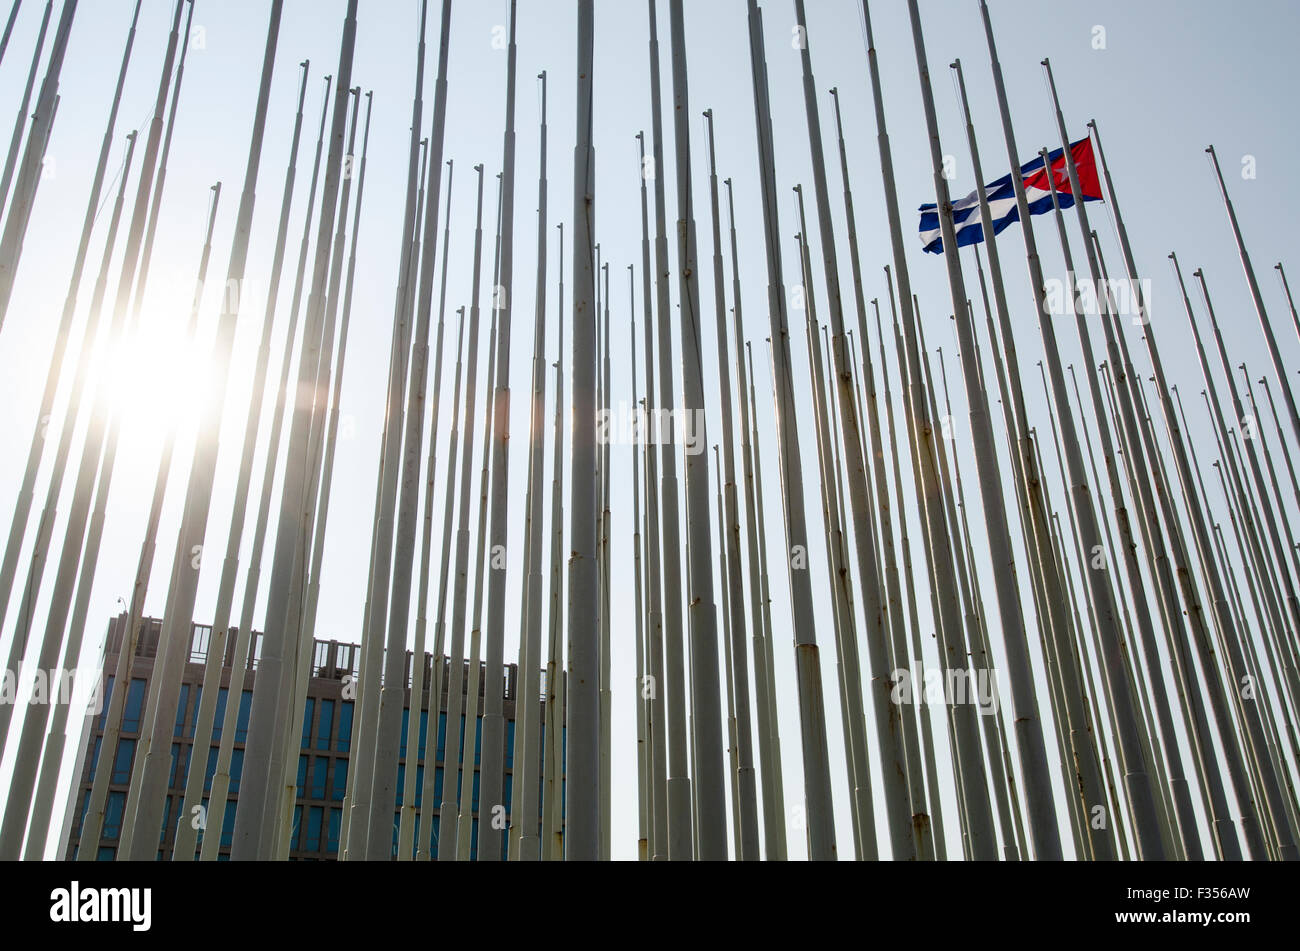 The former U.S. embassy building along Havana?s Malecón waterfront, Cuba. - Stock Image